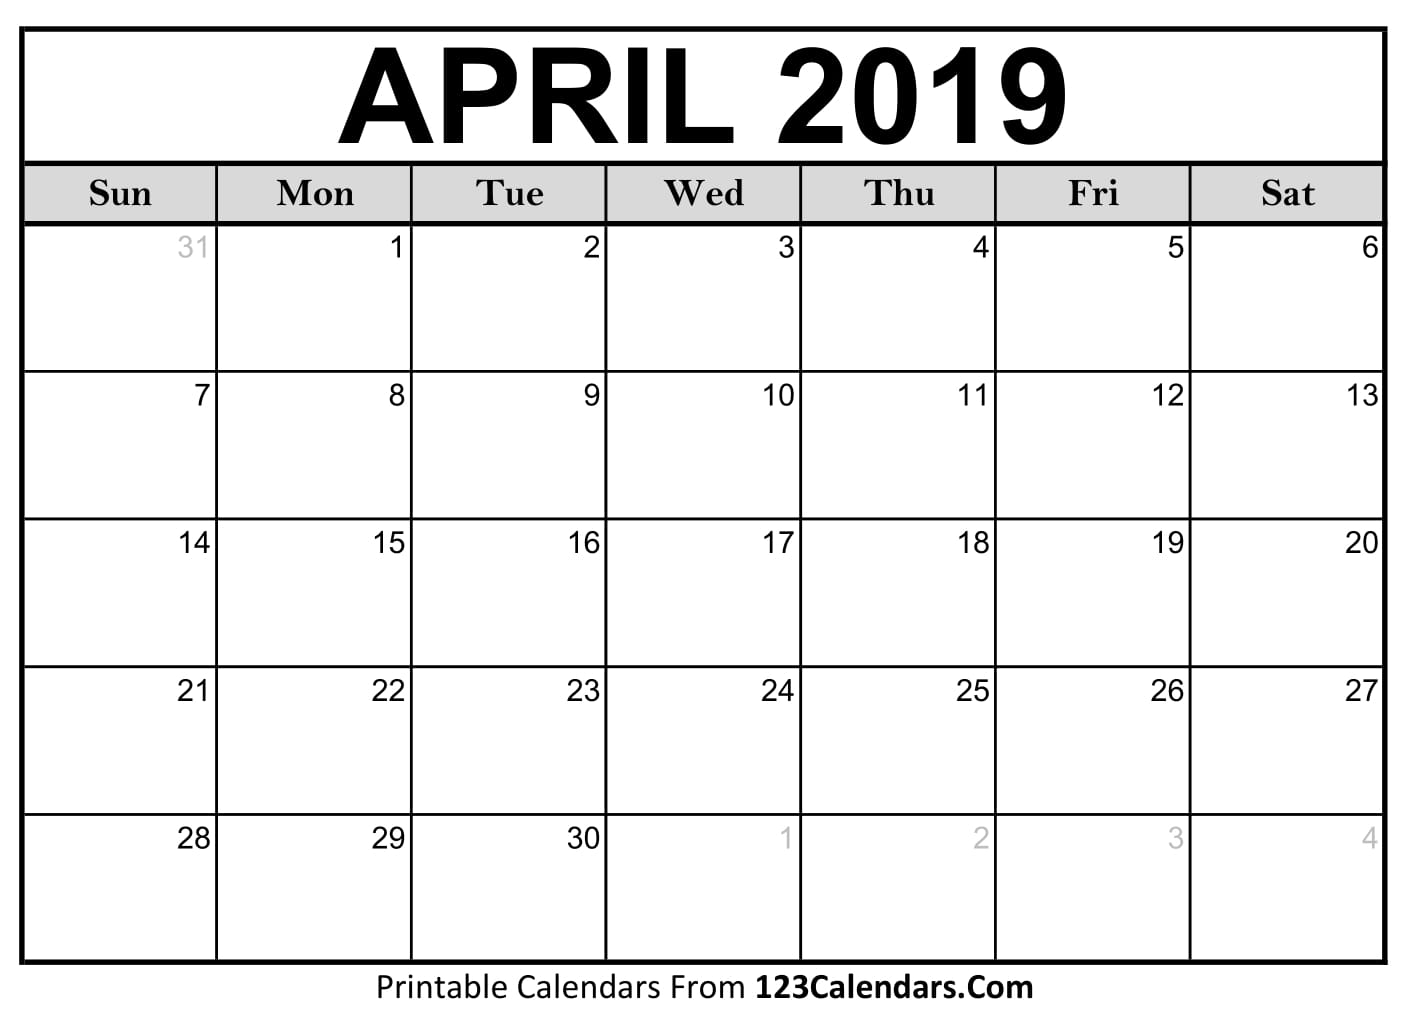 Calendar April Calendar : Free april calendar printable template source